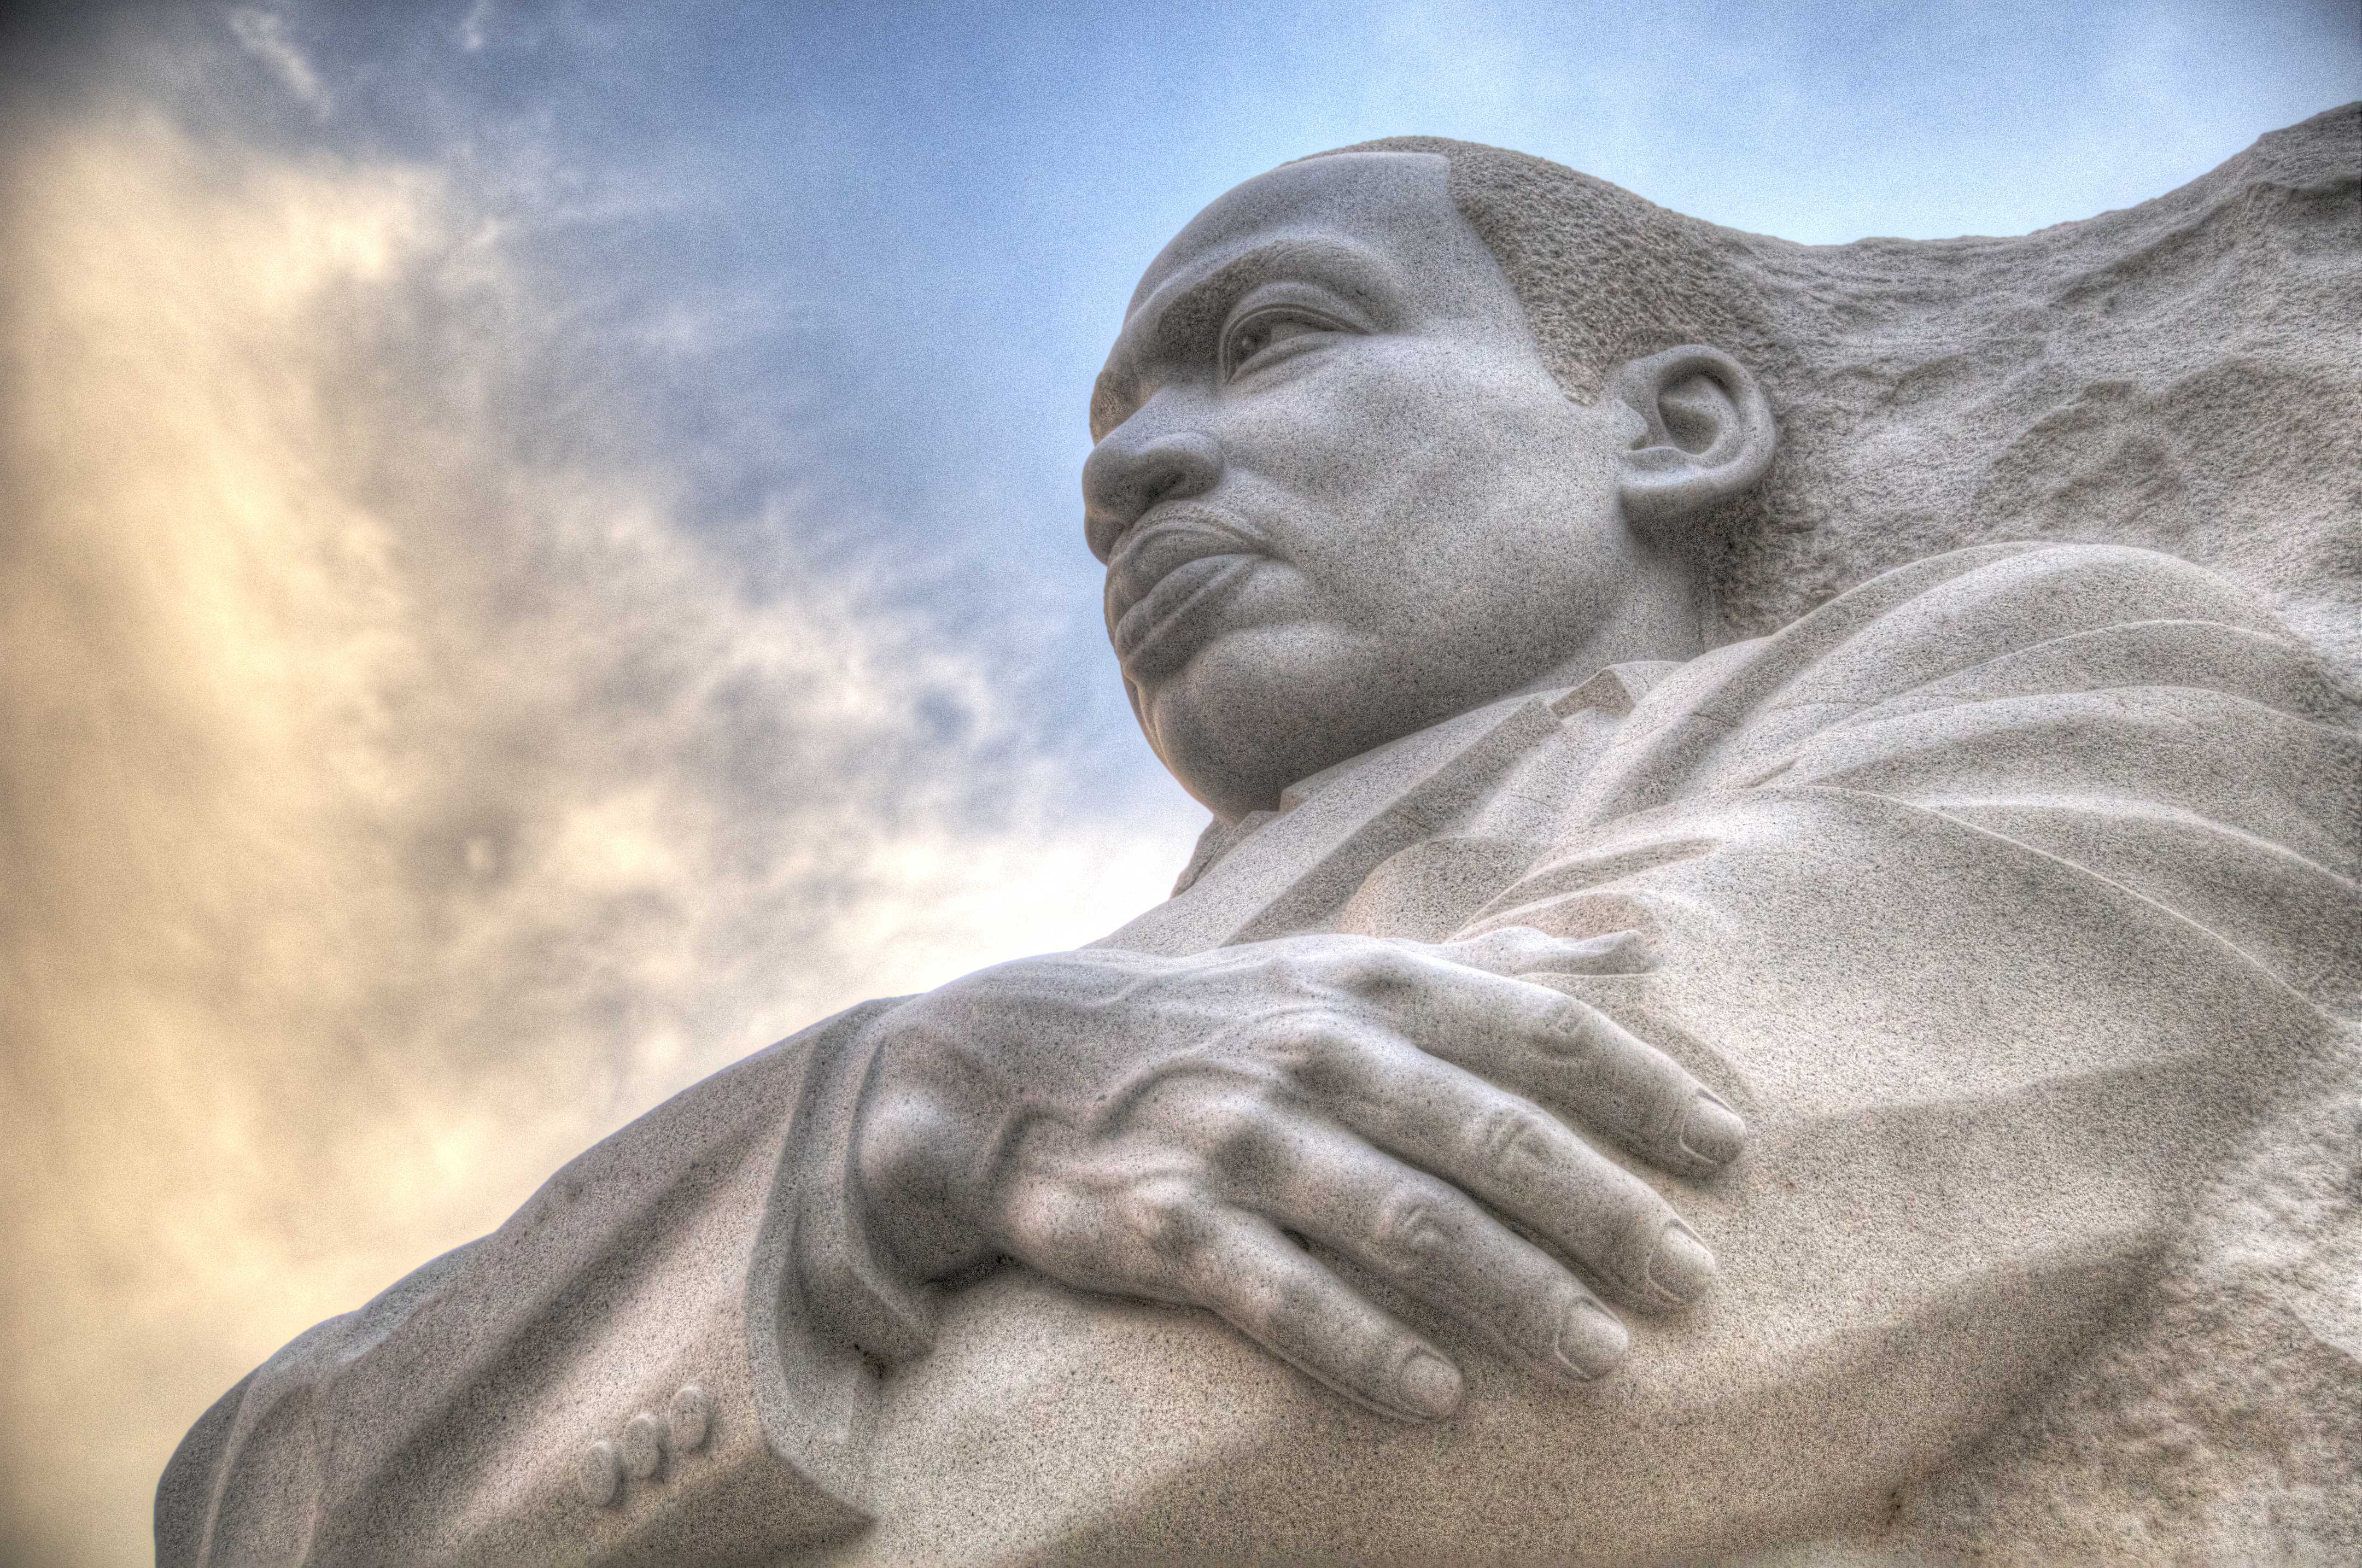 QUIZ: How much do you know about Martin Luther King Jr.?